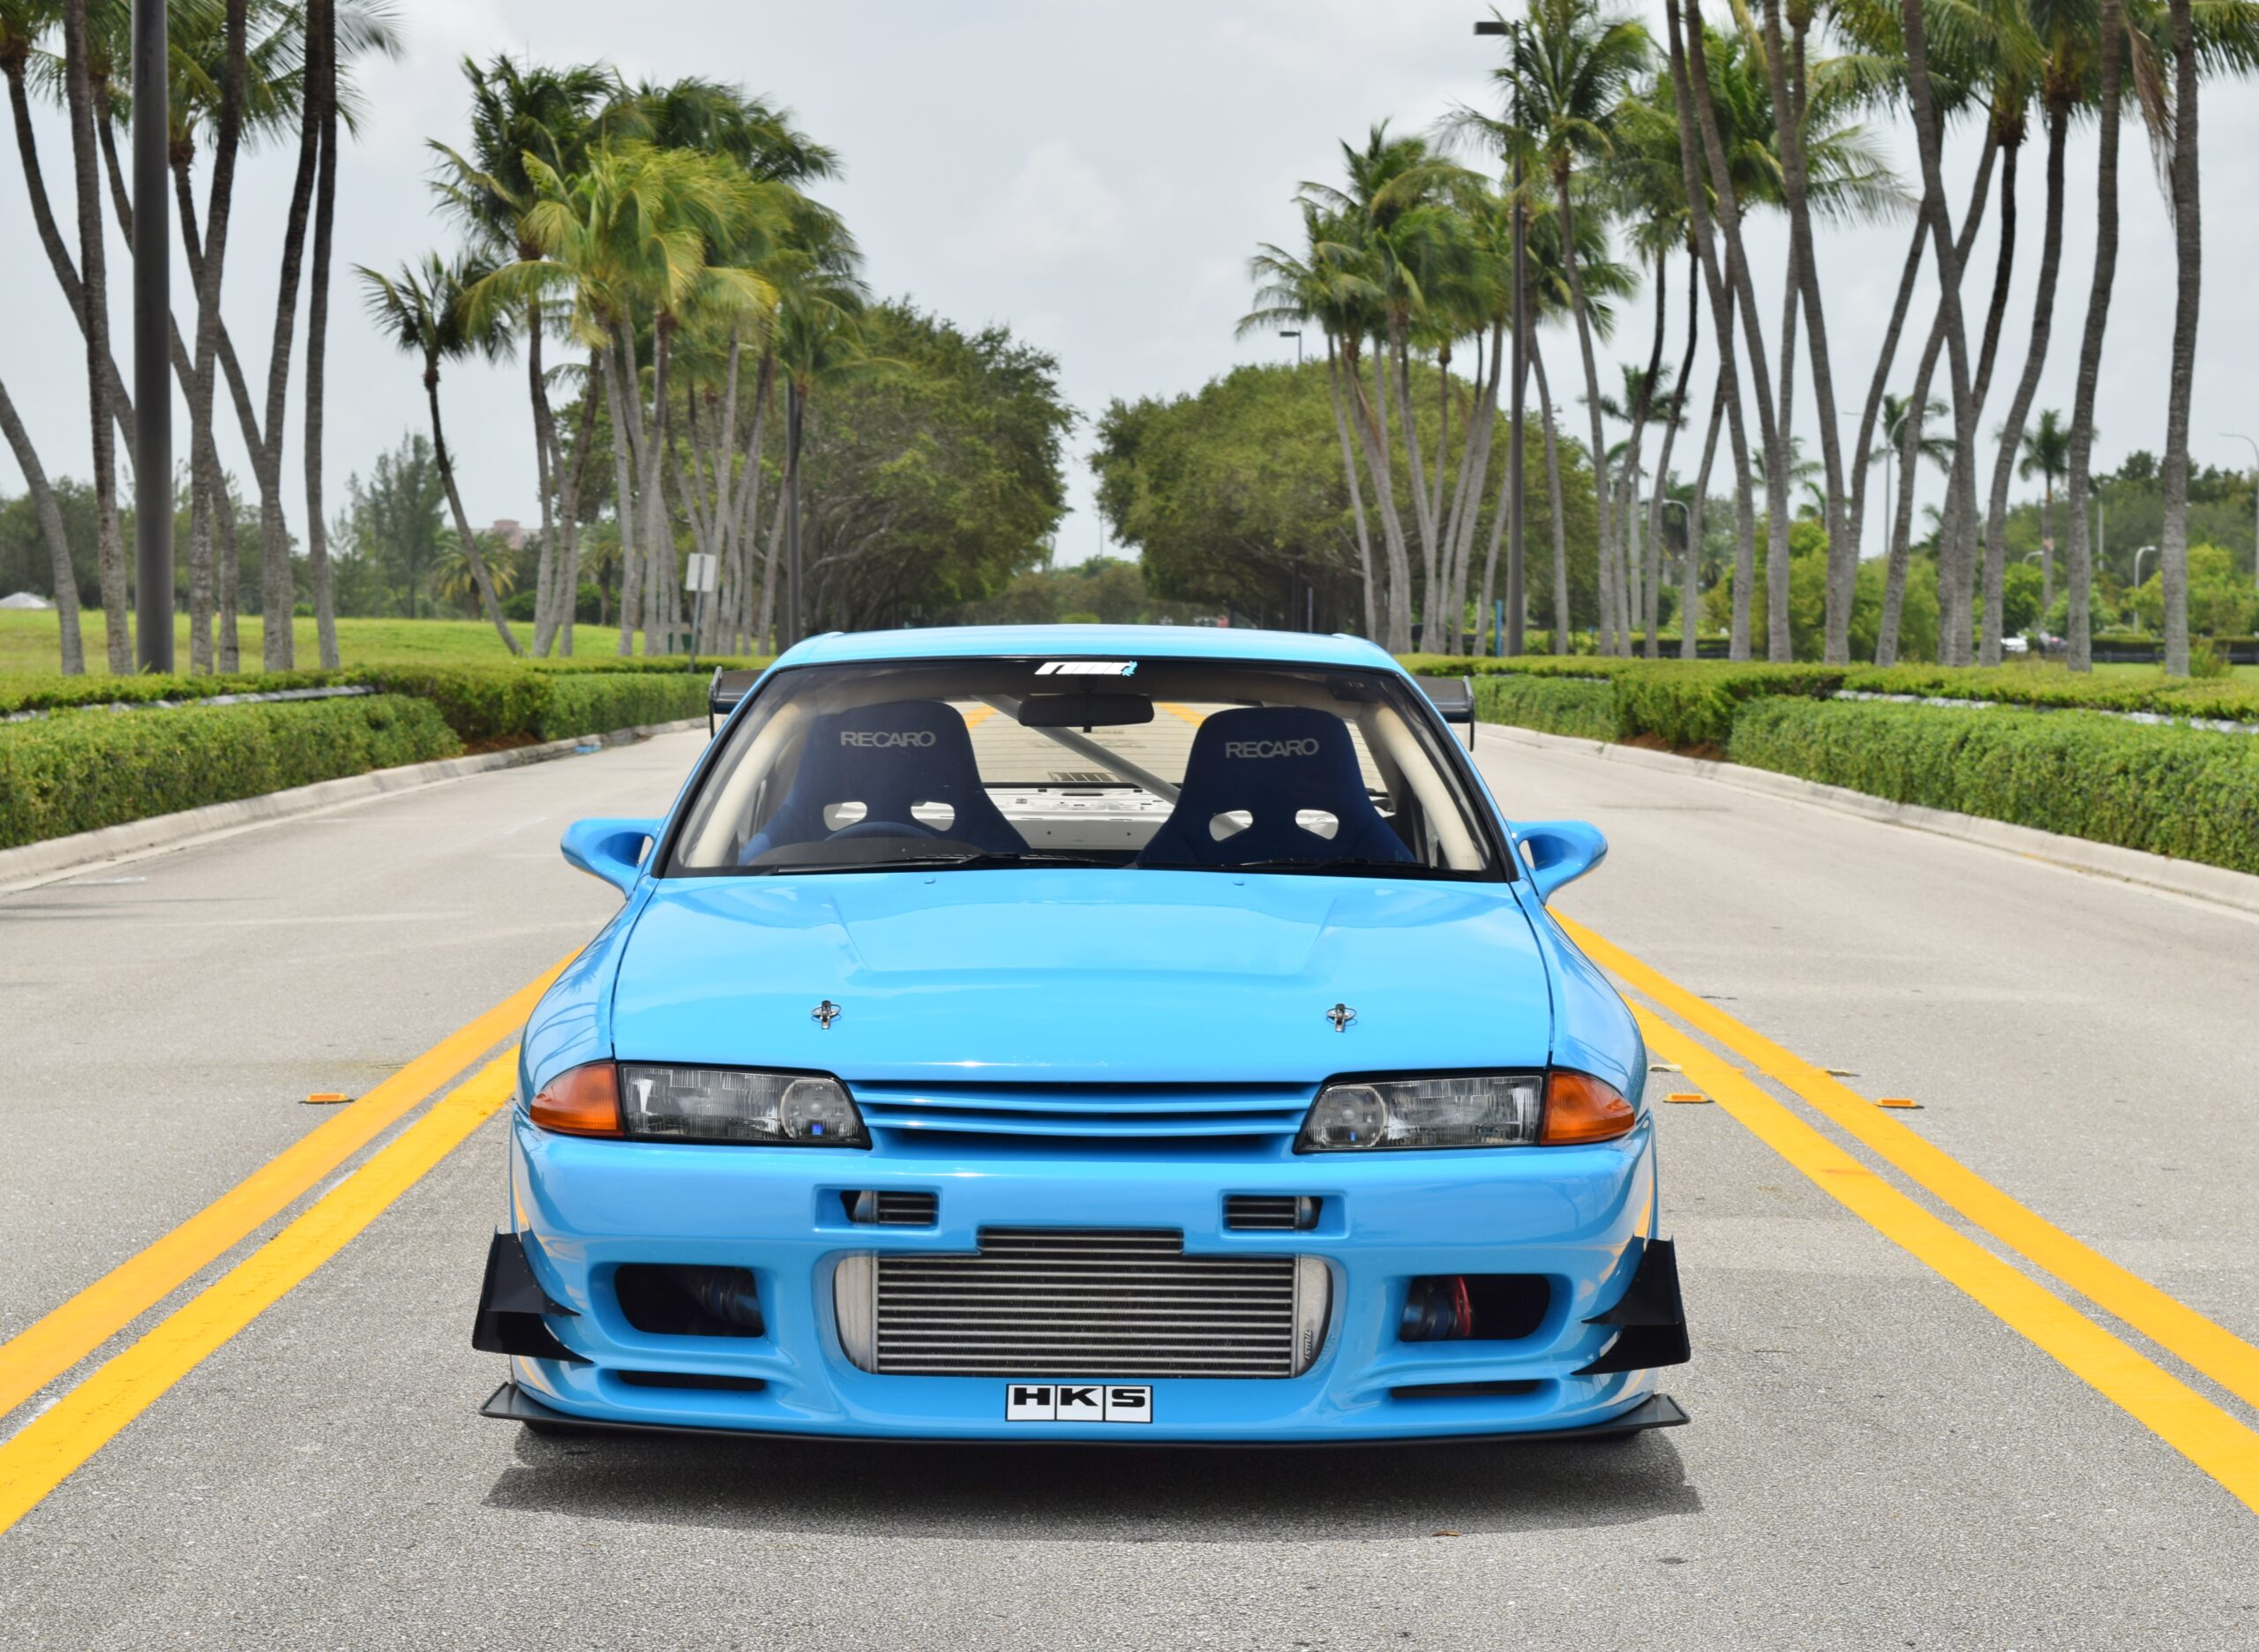 1994 Nissan GT-R R32 Skyline Time Attack/ Street | AG-Y Demo Car | 550PS | HKS Turbos | Full Build | Alcon